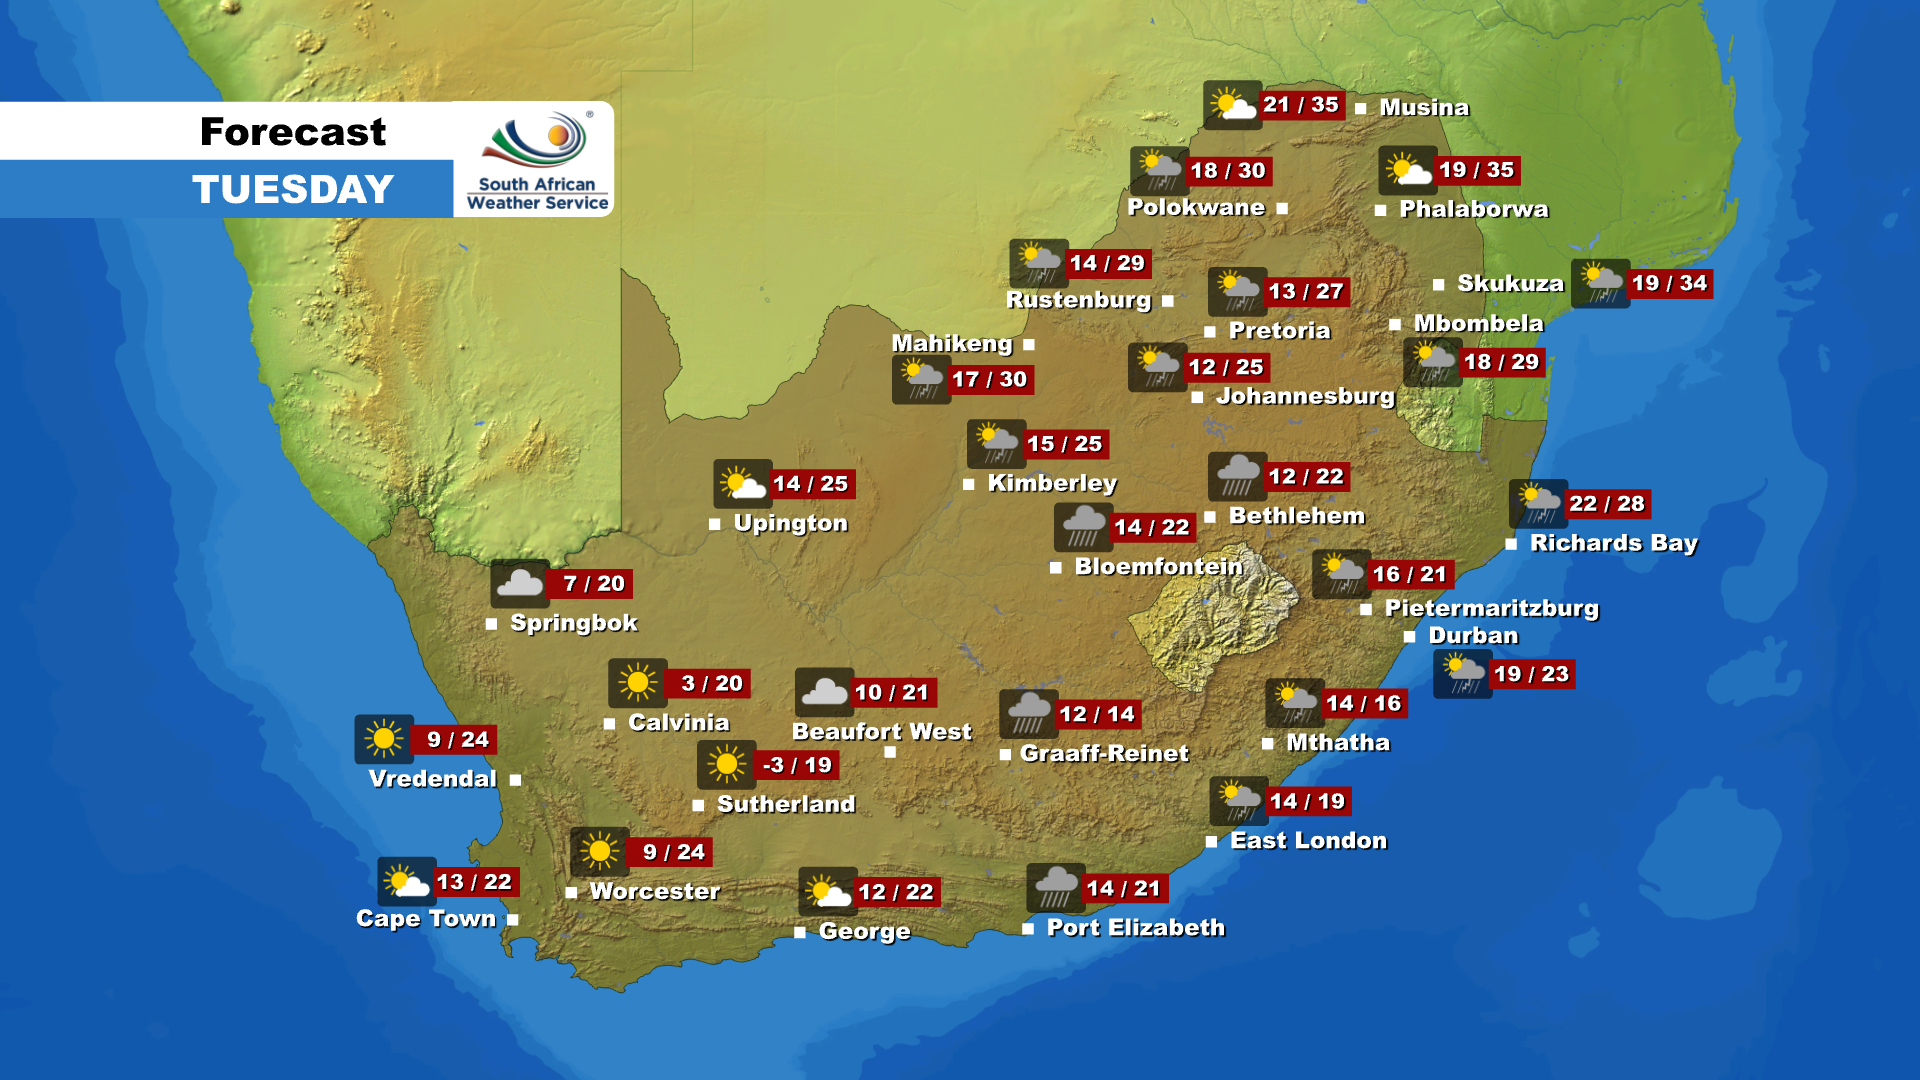 Weather Forecast - Tuesday, 14 April 2020